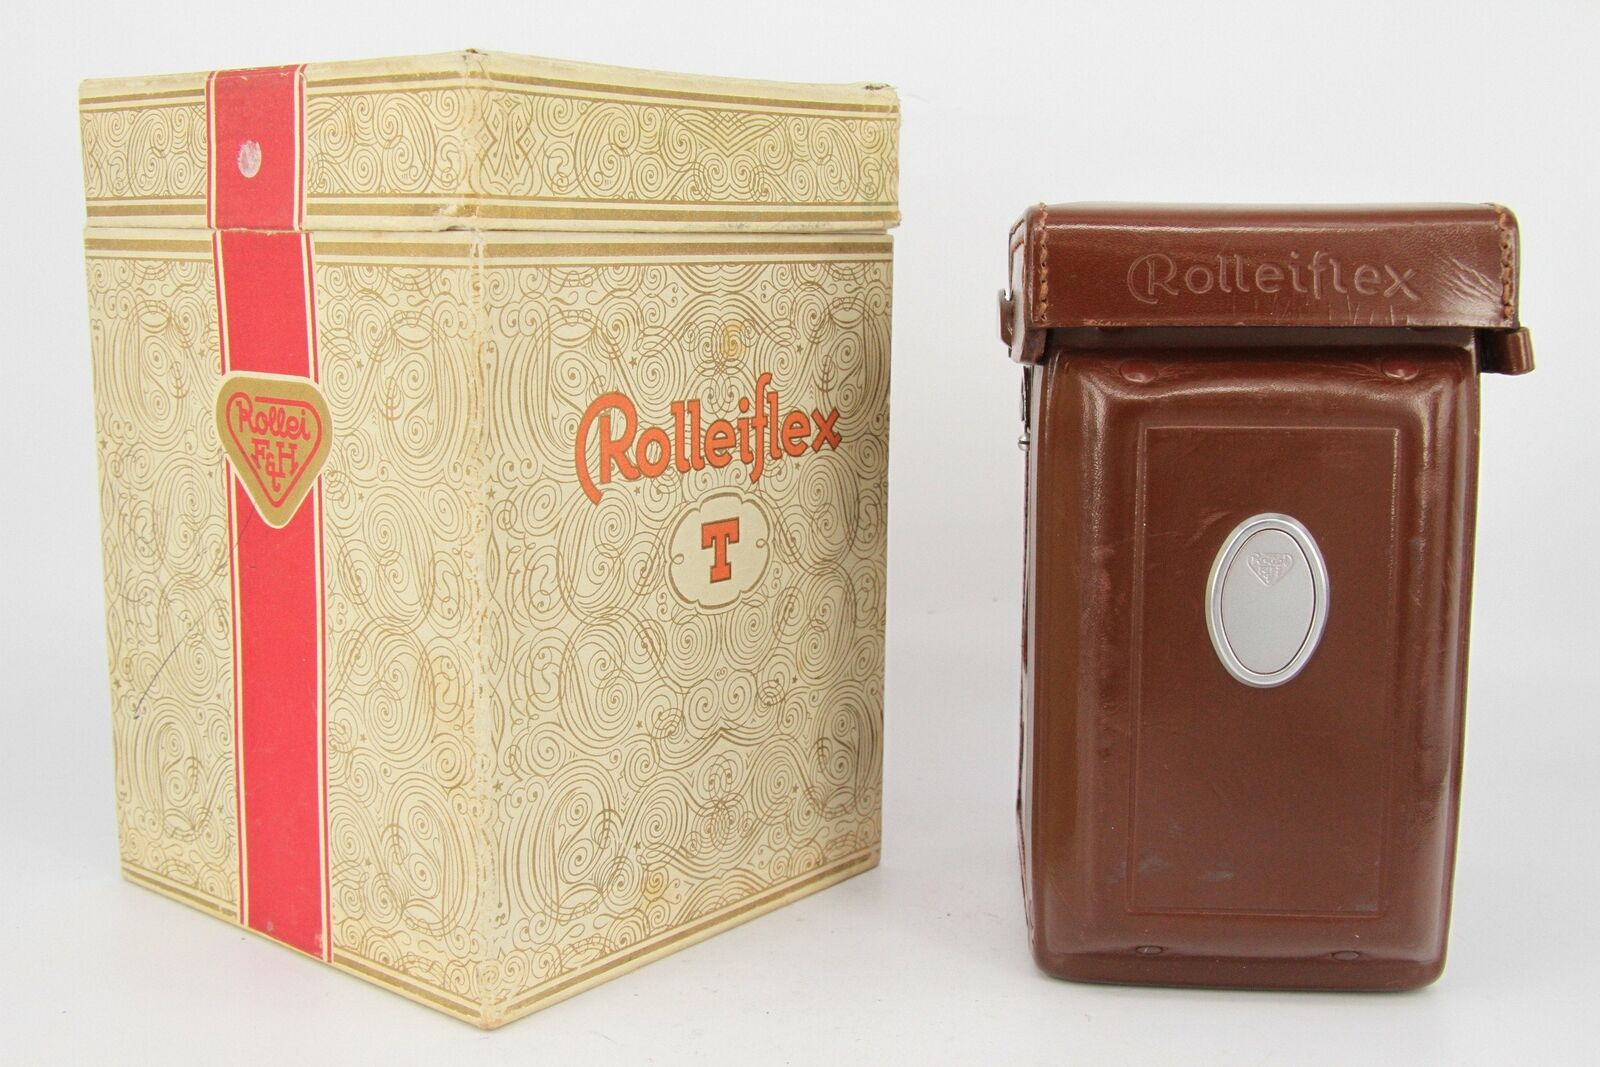 Rolleiflex Rollei Original Box & Ever Ready Leather Case for Model T TLR - Pr...